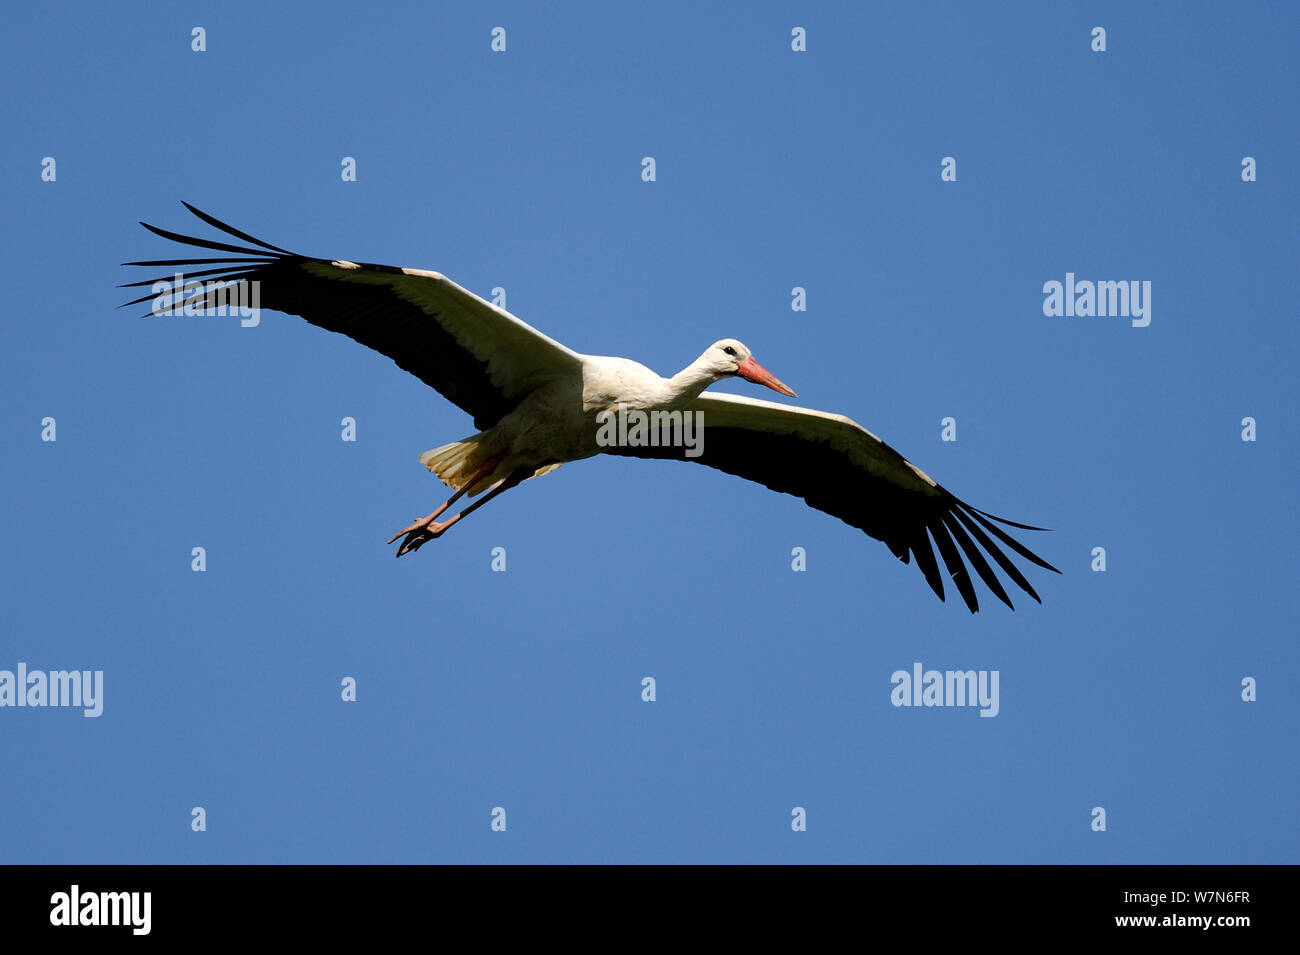 White stork (Ciconia ciconia) flying, Alsace, France. Stock Photo